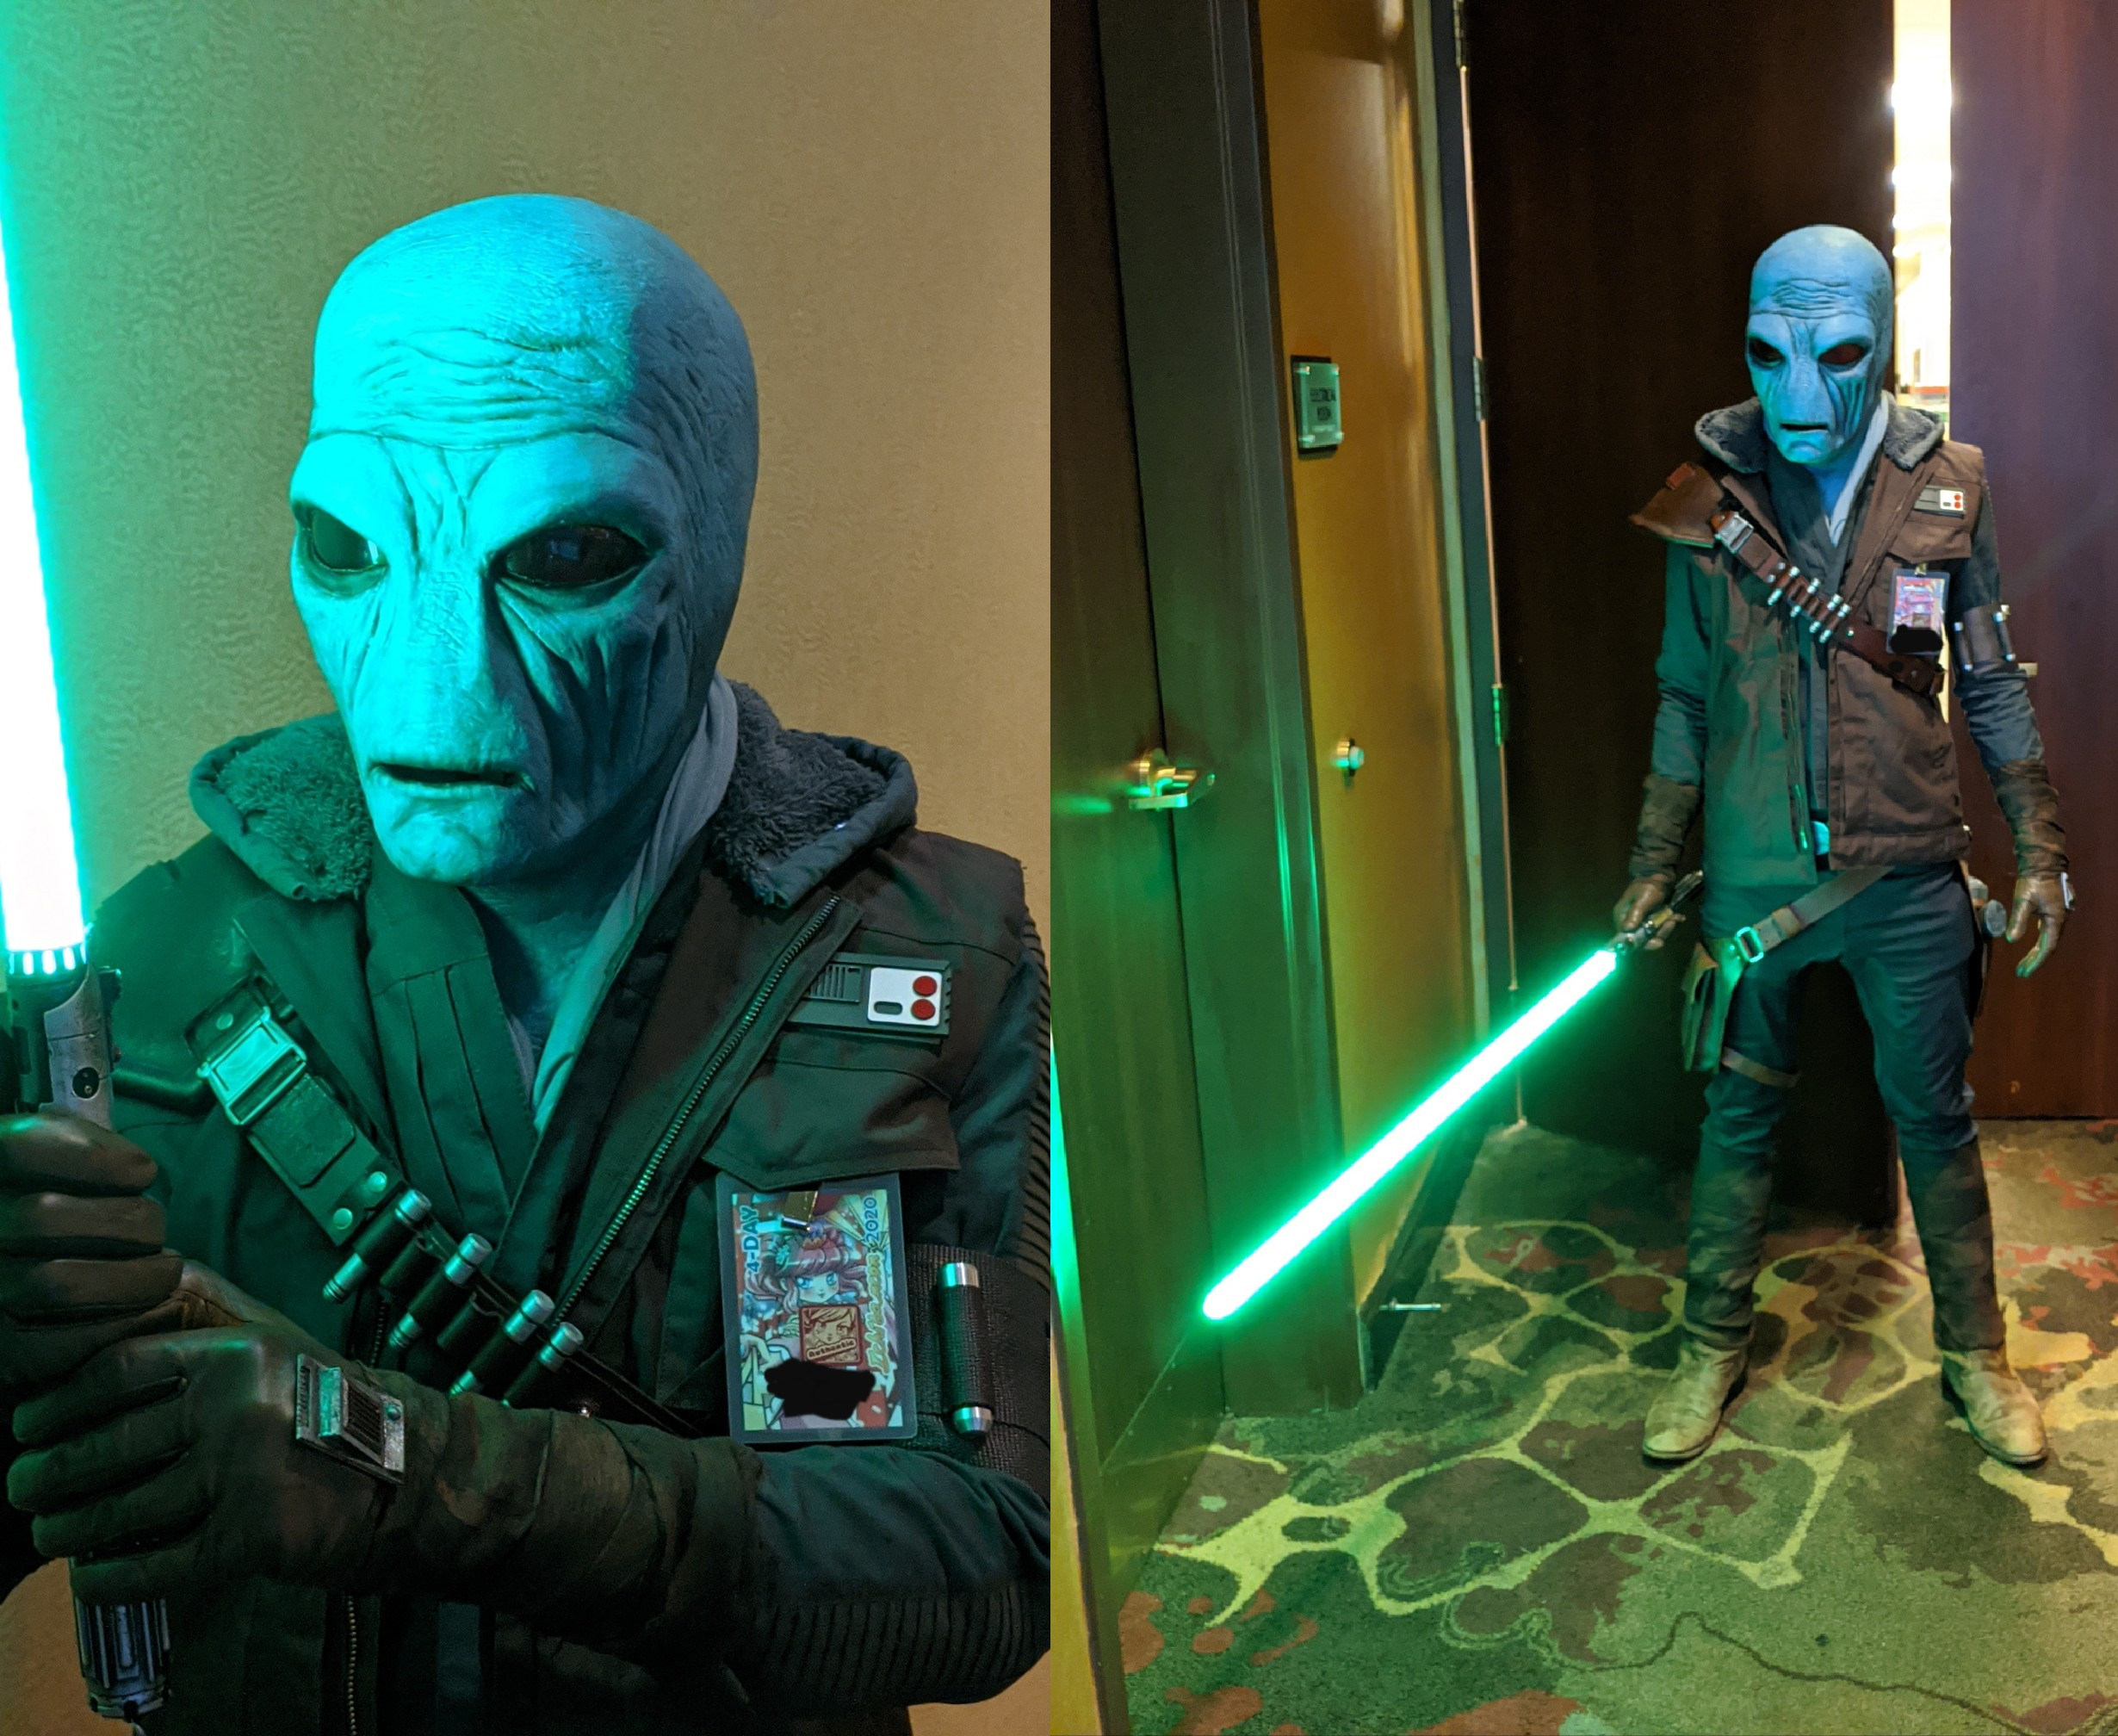 I cosplayed a Duros Jedi at Ichibancon 2020 in NC this weekend.